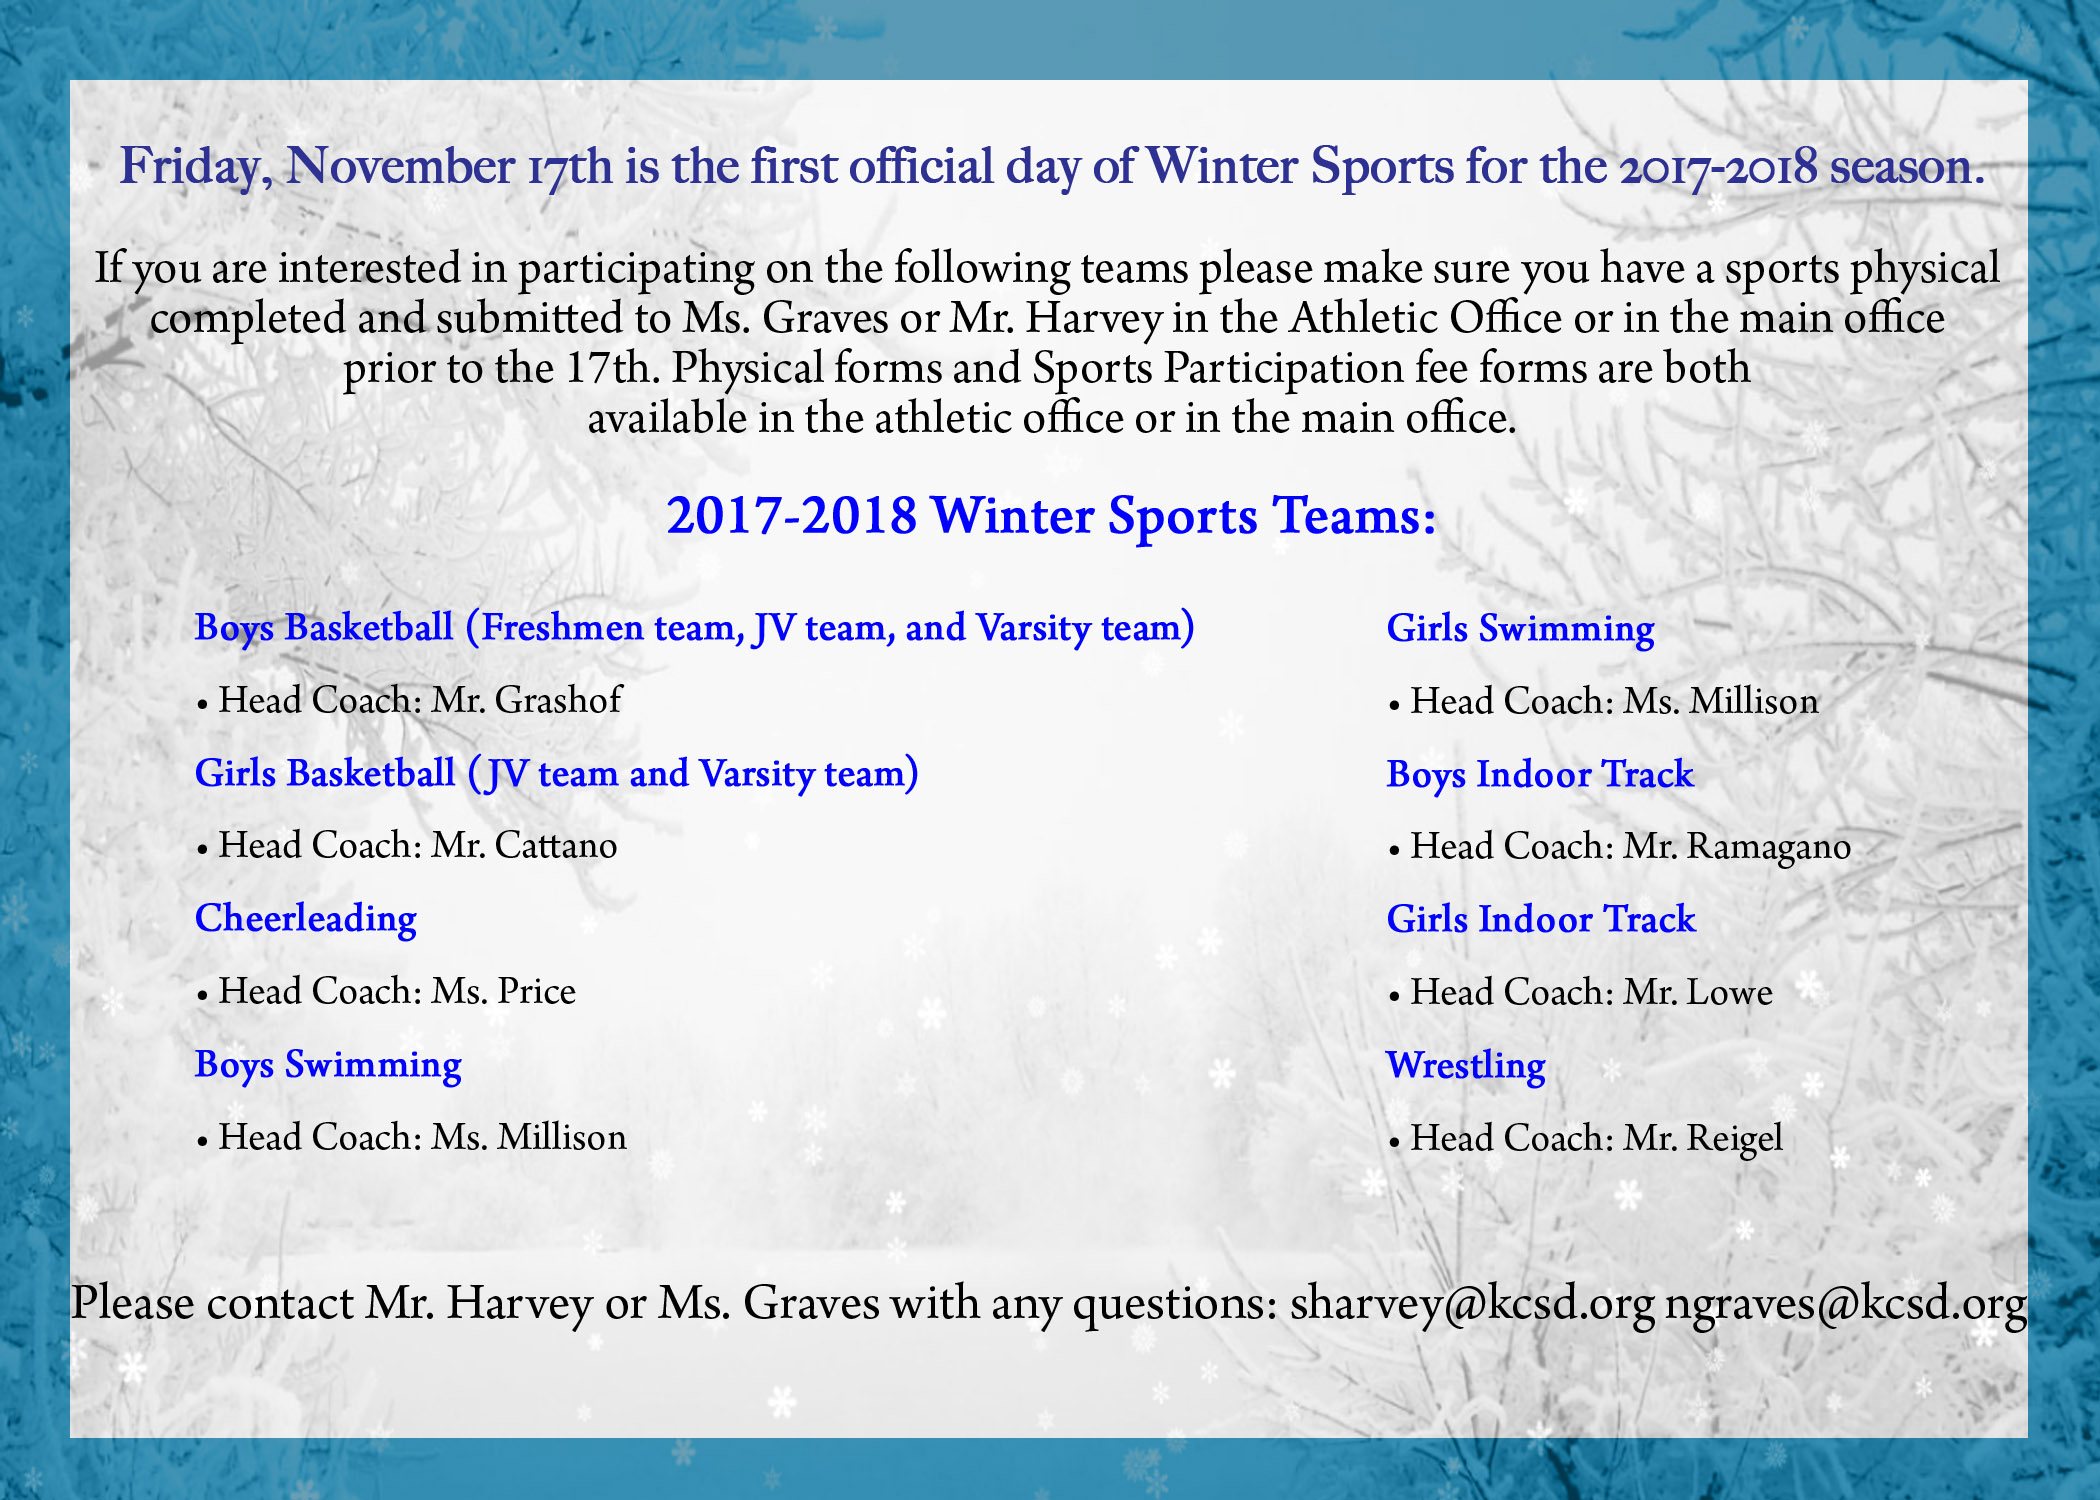 Winter Sports Team Coach List